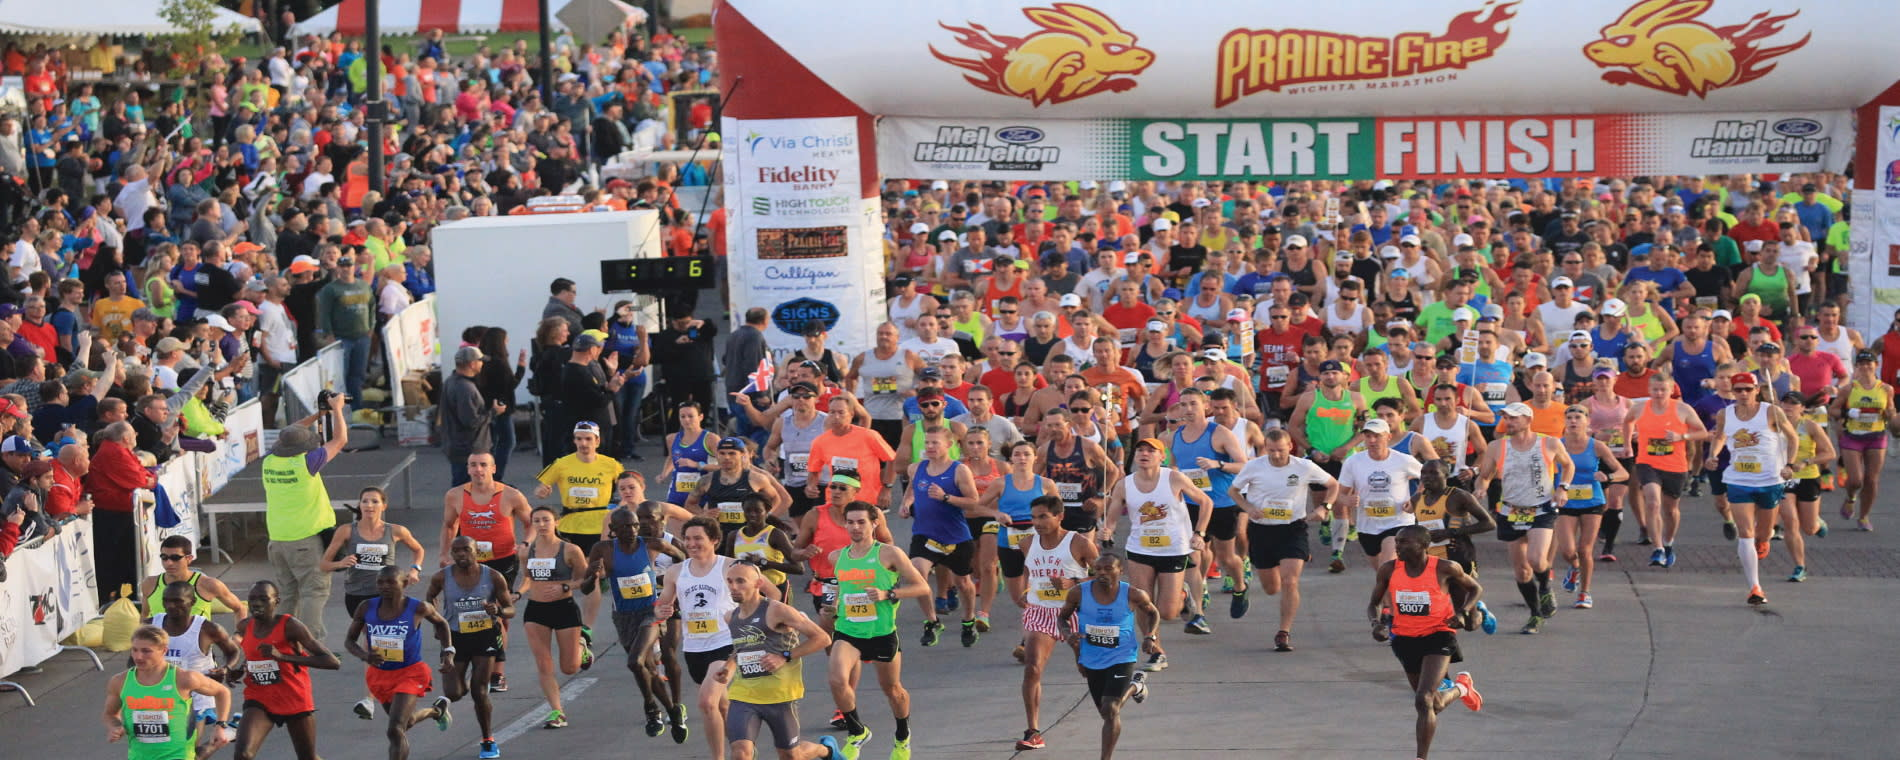 Prairie Fire Marathon 2015_Starting Line_Greater Wichita Sports Commission